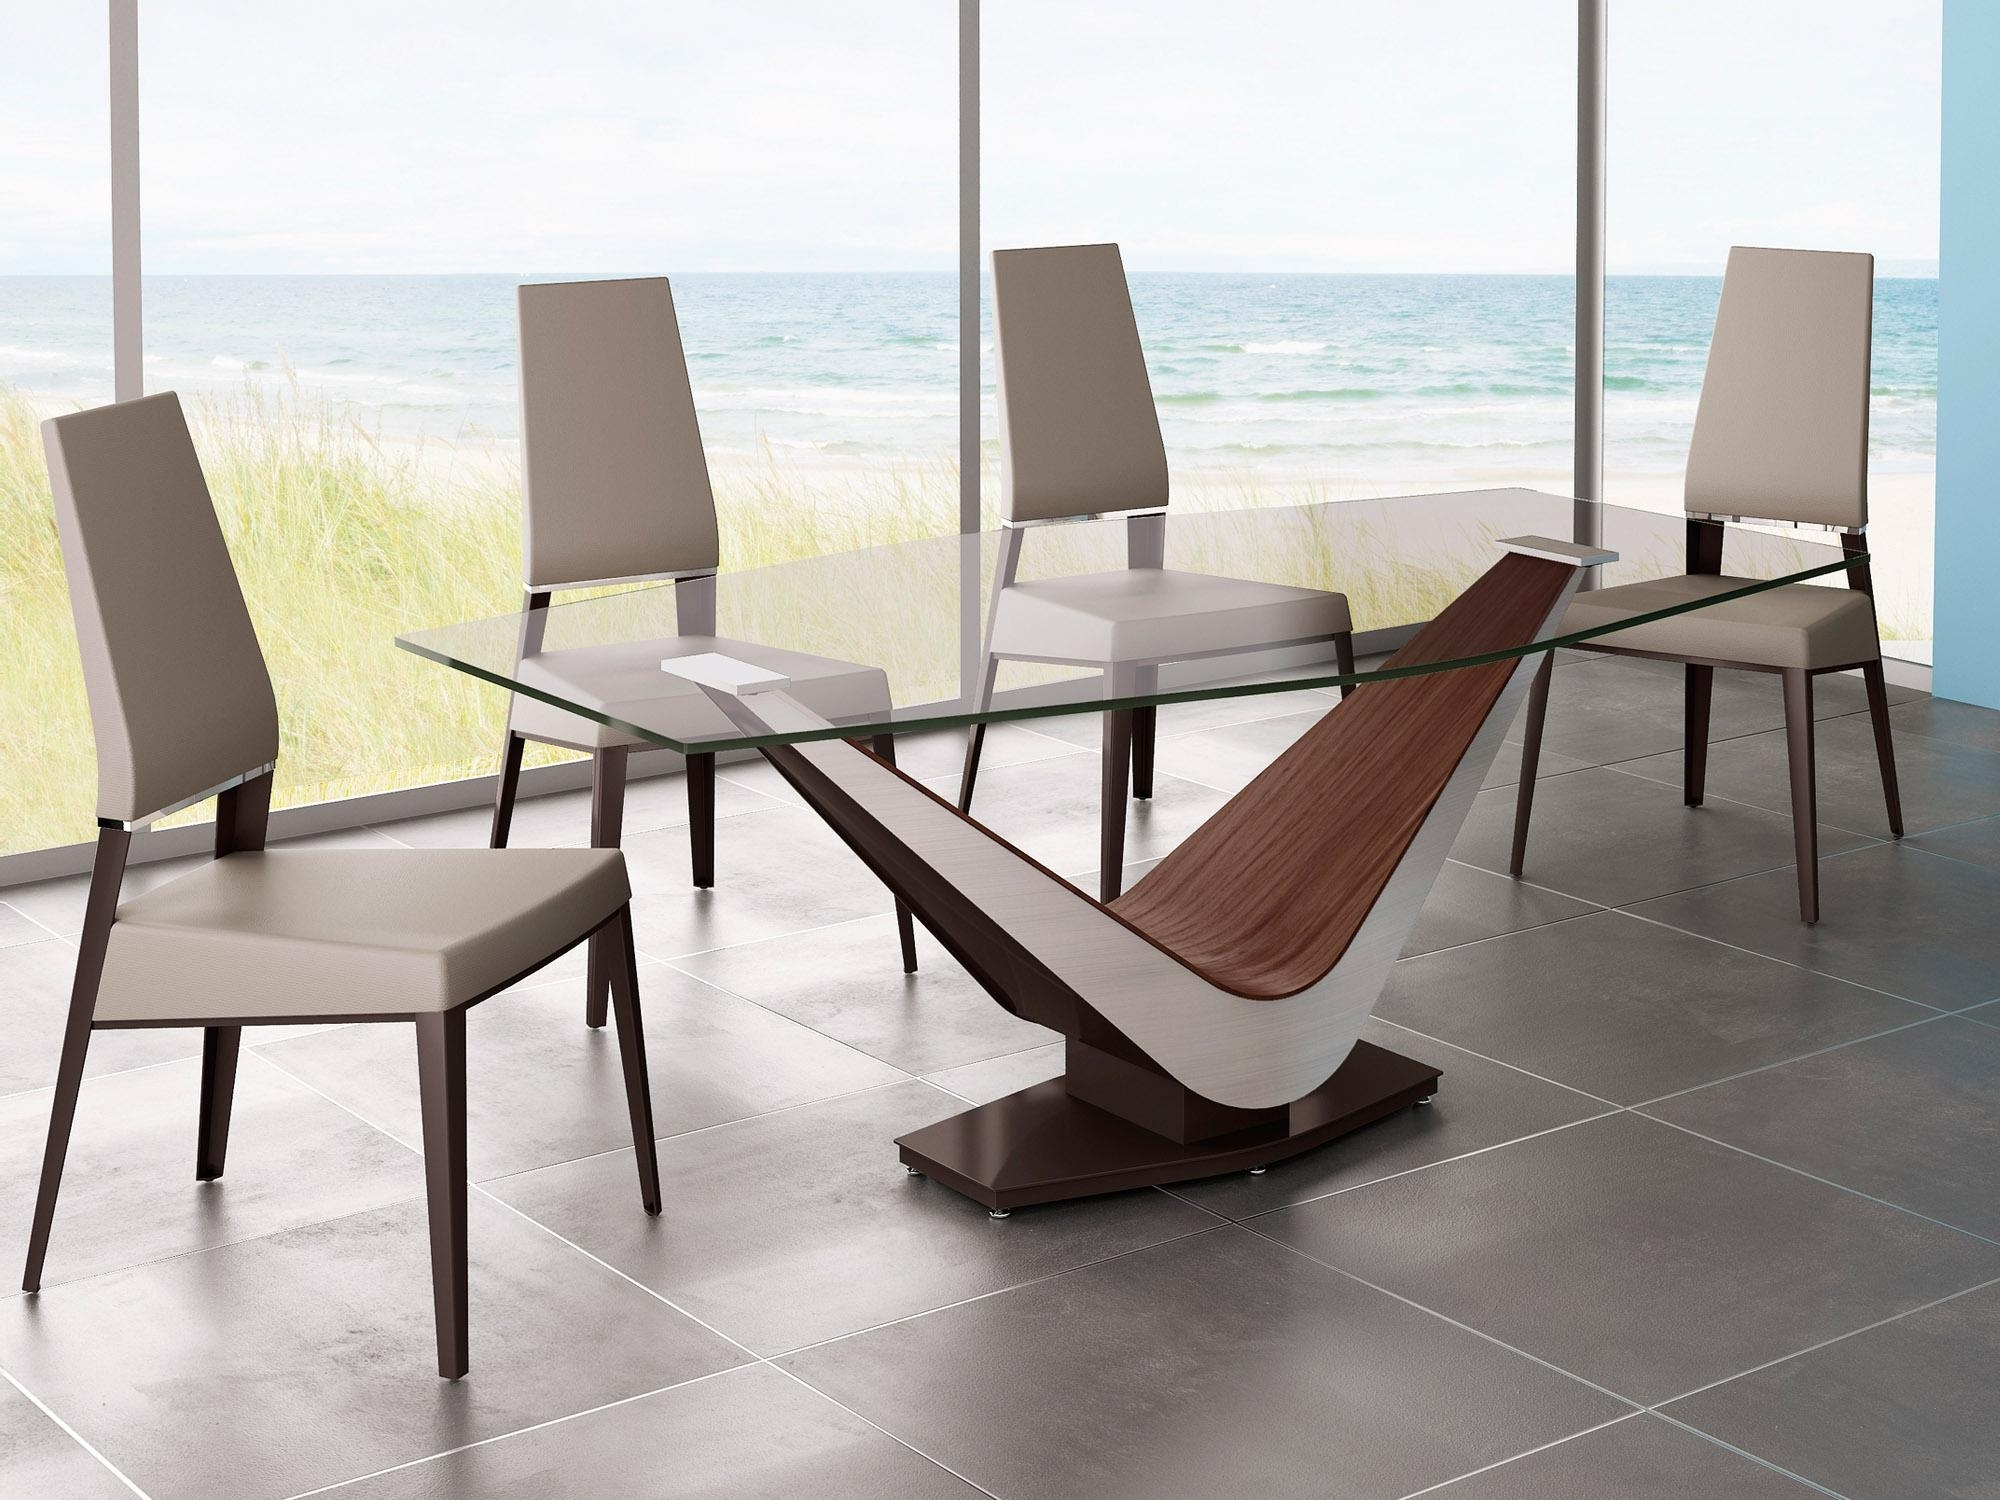 Modern Dining Table Designs Formal Room Sets Rectangular Tables Inside Well Known Contemporary Dining Tables Sets (View 16 of 25)